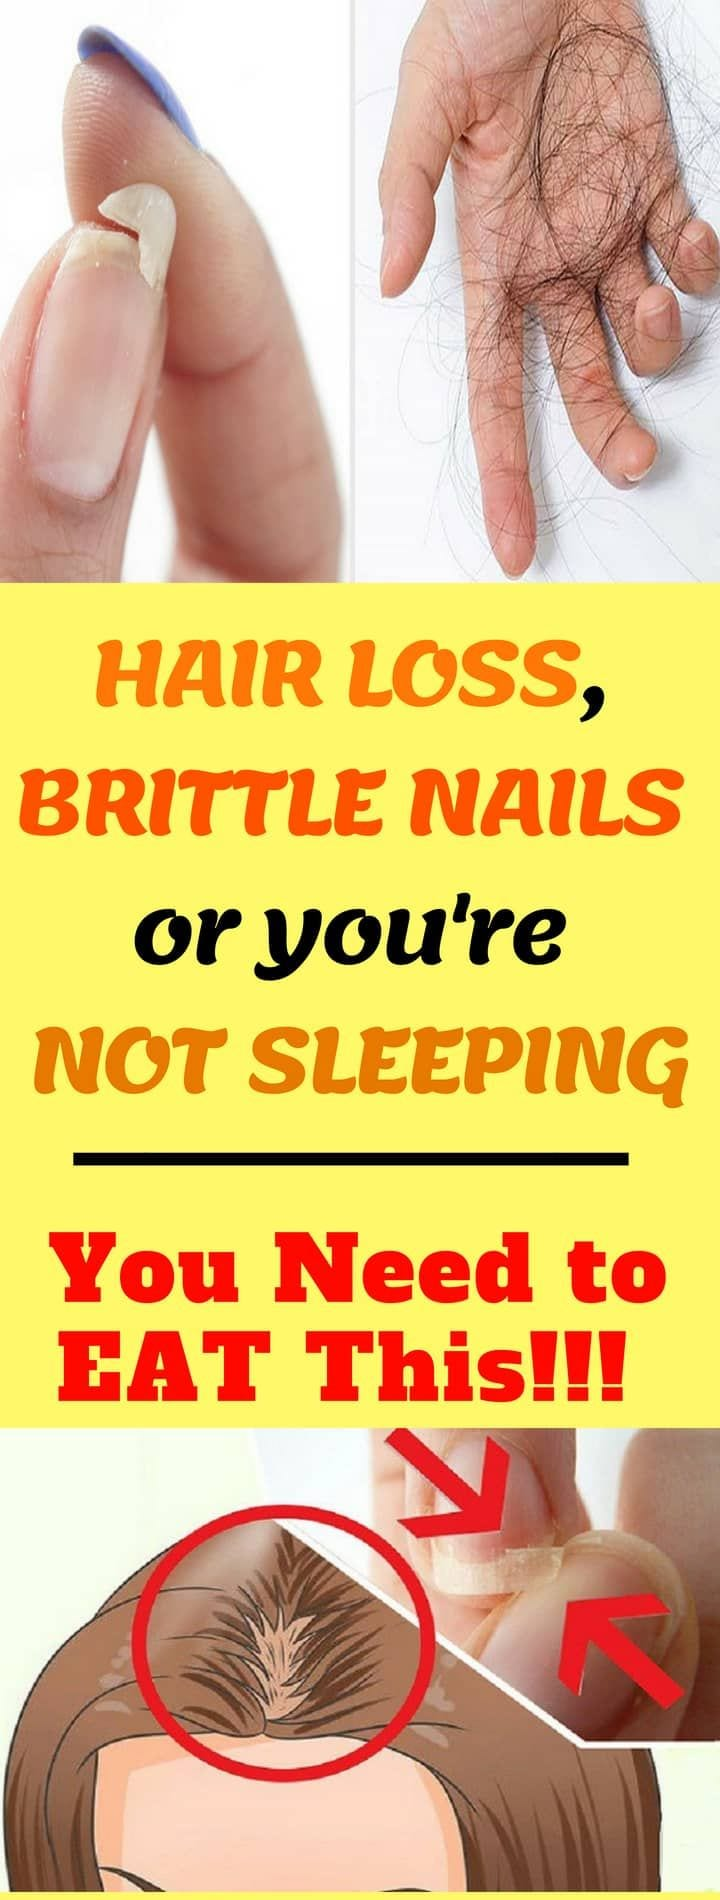 EAT THIS IF YOU HAVE HAIR LOSS, BRITTLE NAILS OR YOU'RE NOT SLEEPING!!! #hairloss #brittle #nails #eat #sleeping #health Source by mantisforce1   …